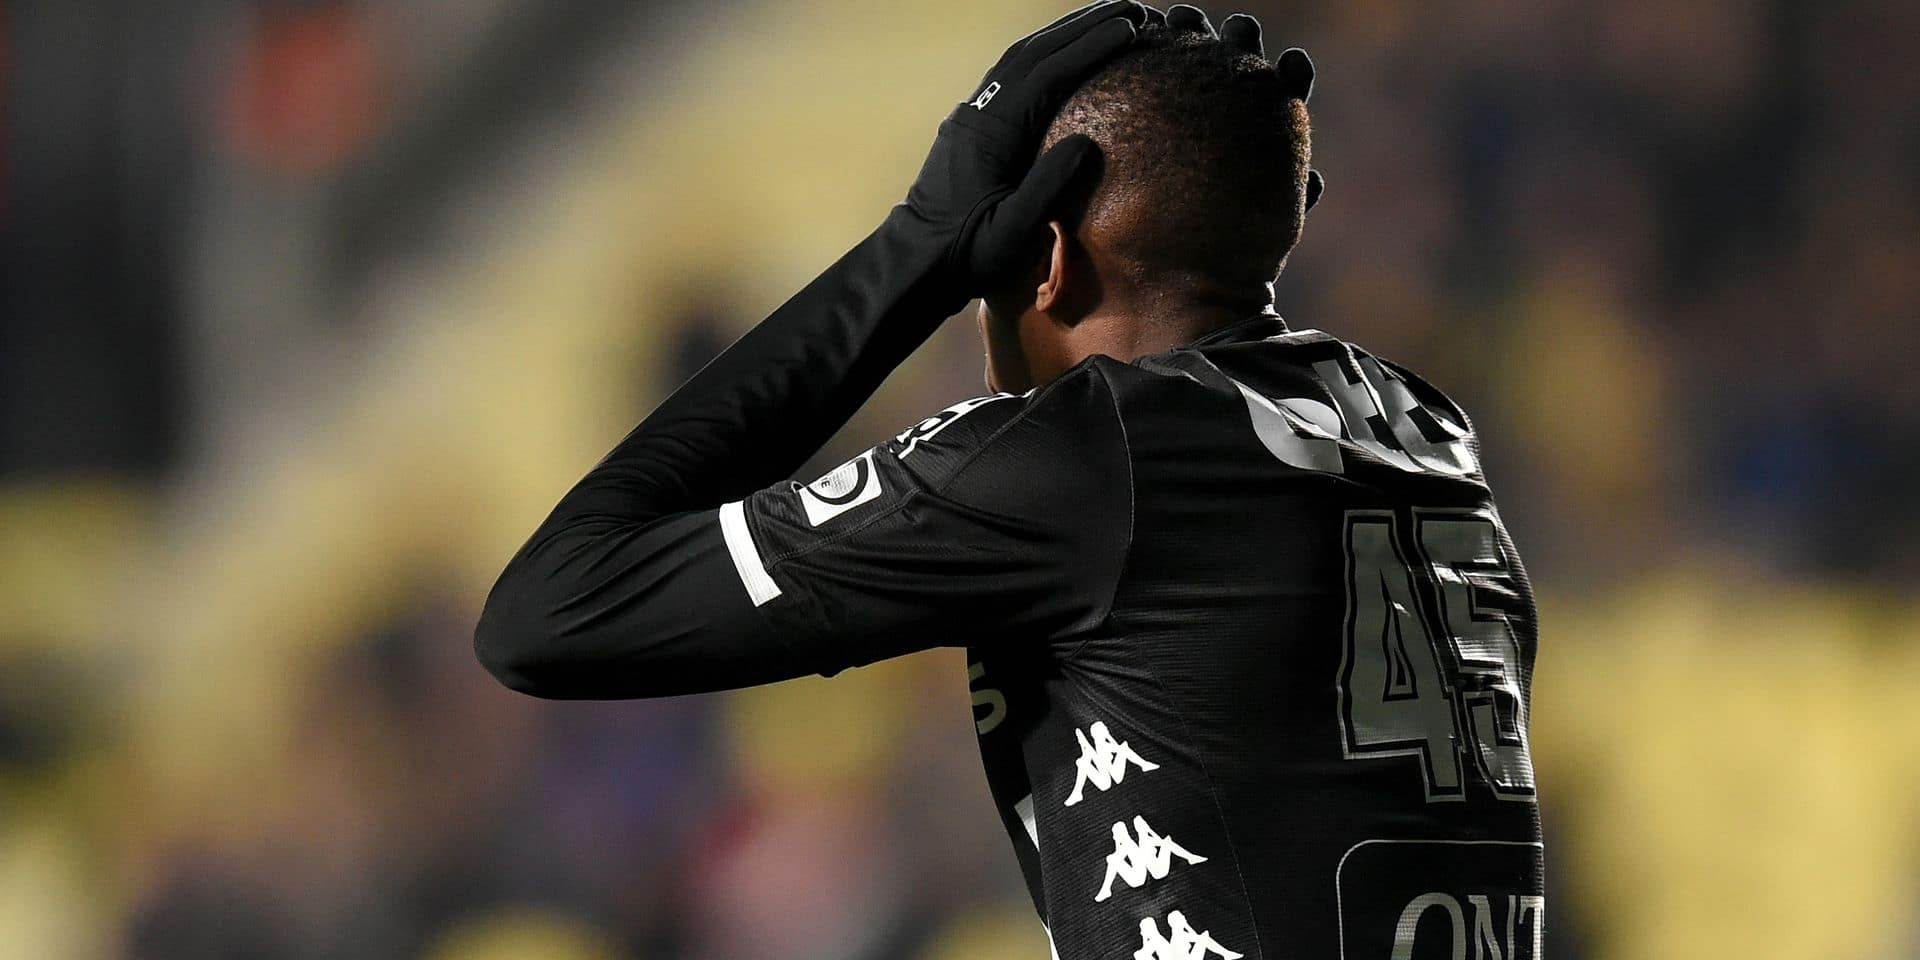 Charleroi's Victor Osimhen reacts during a soccer match between Sint-Truidense VV and Sporting Charleroi, Sunday 24 February 2019 in Sint-Truiden, on the 27th day of the 'Jupiler Pro League' Belgian soccer championship season 2018-2019. BELGA PHOTO YORICK JANSENS